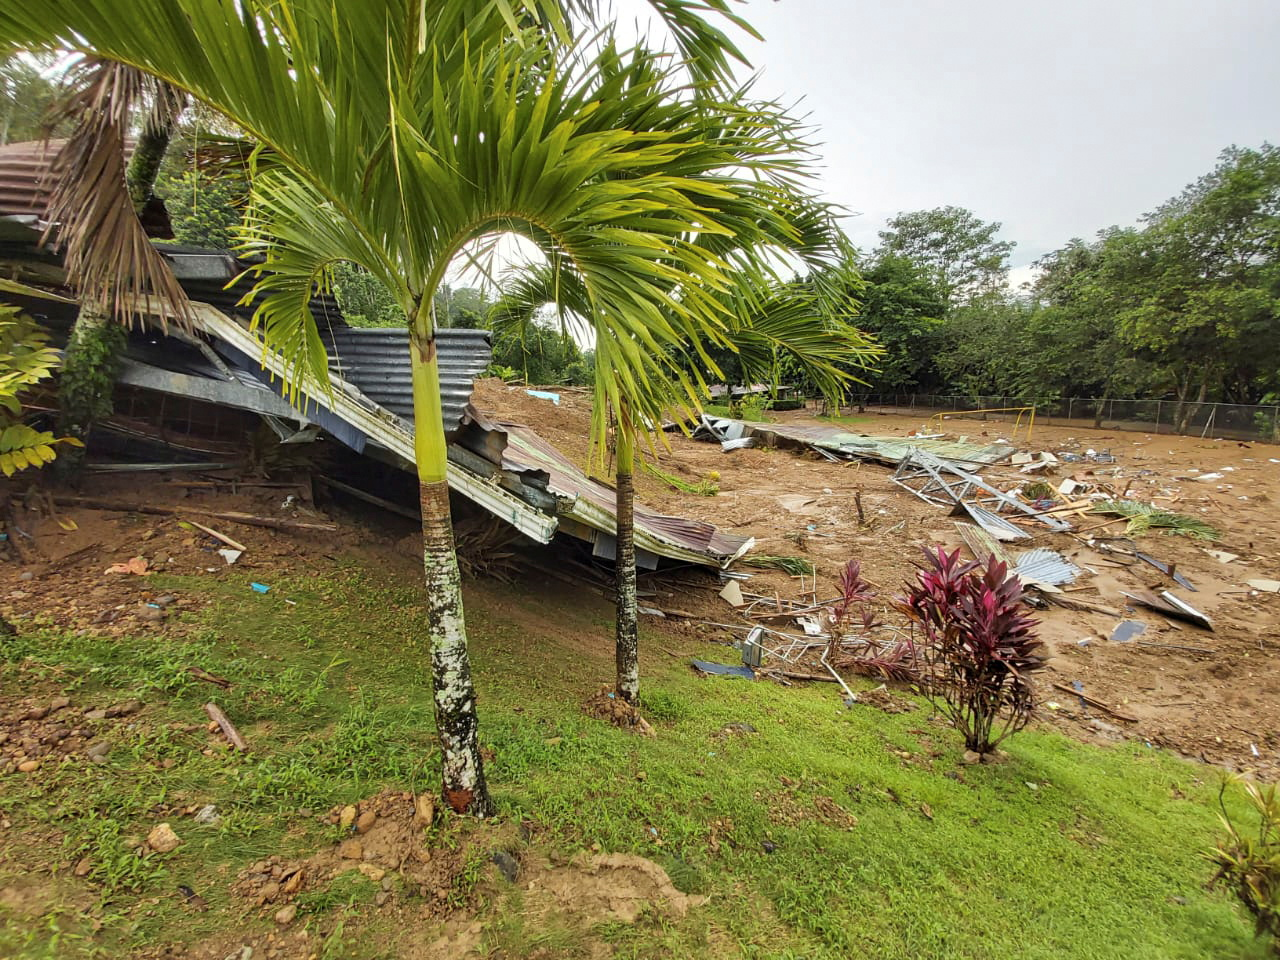 A school damaged by a mudslide due to heavy rains is pictured in Limon, Costa Rica July 26, 2021. Costa Rica's Presidency/Handout via REUTERS